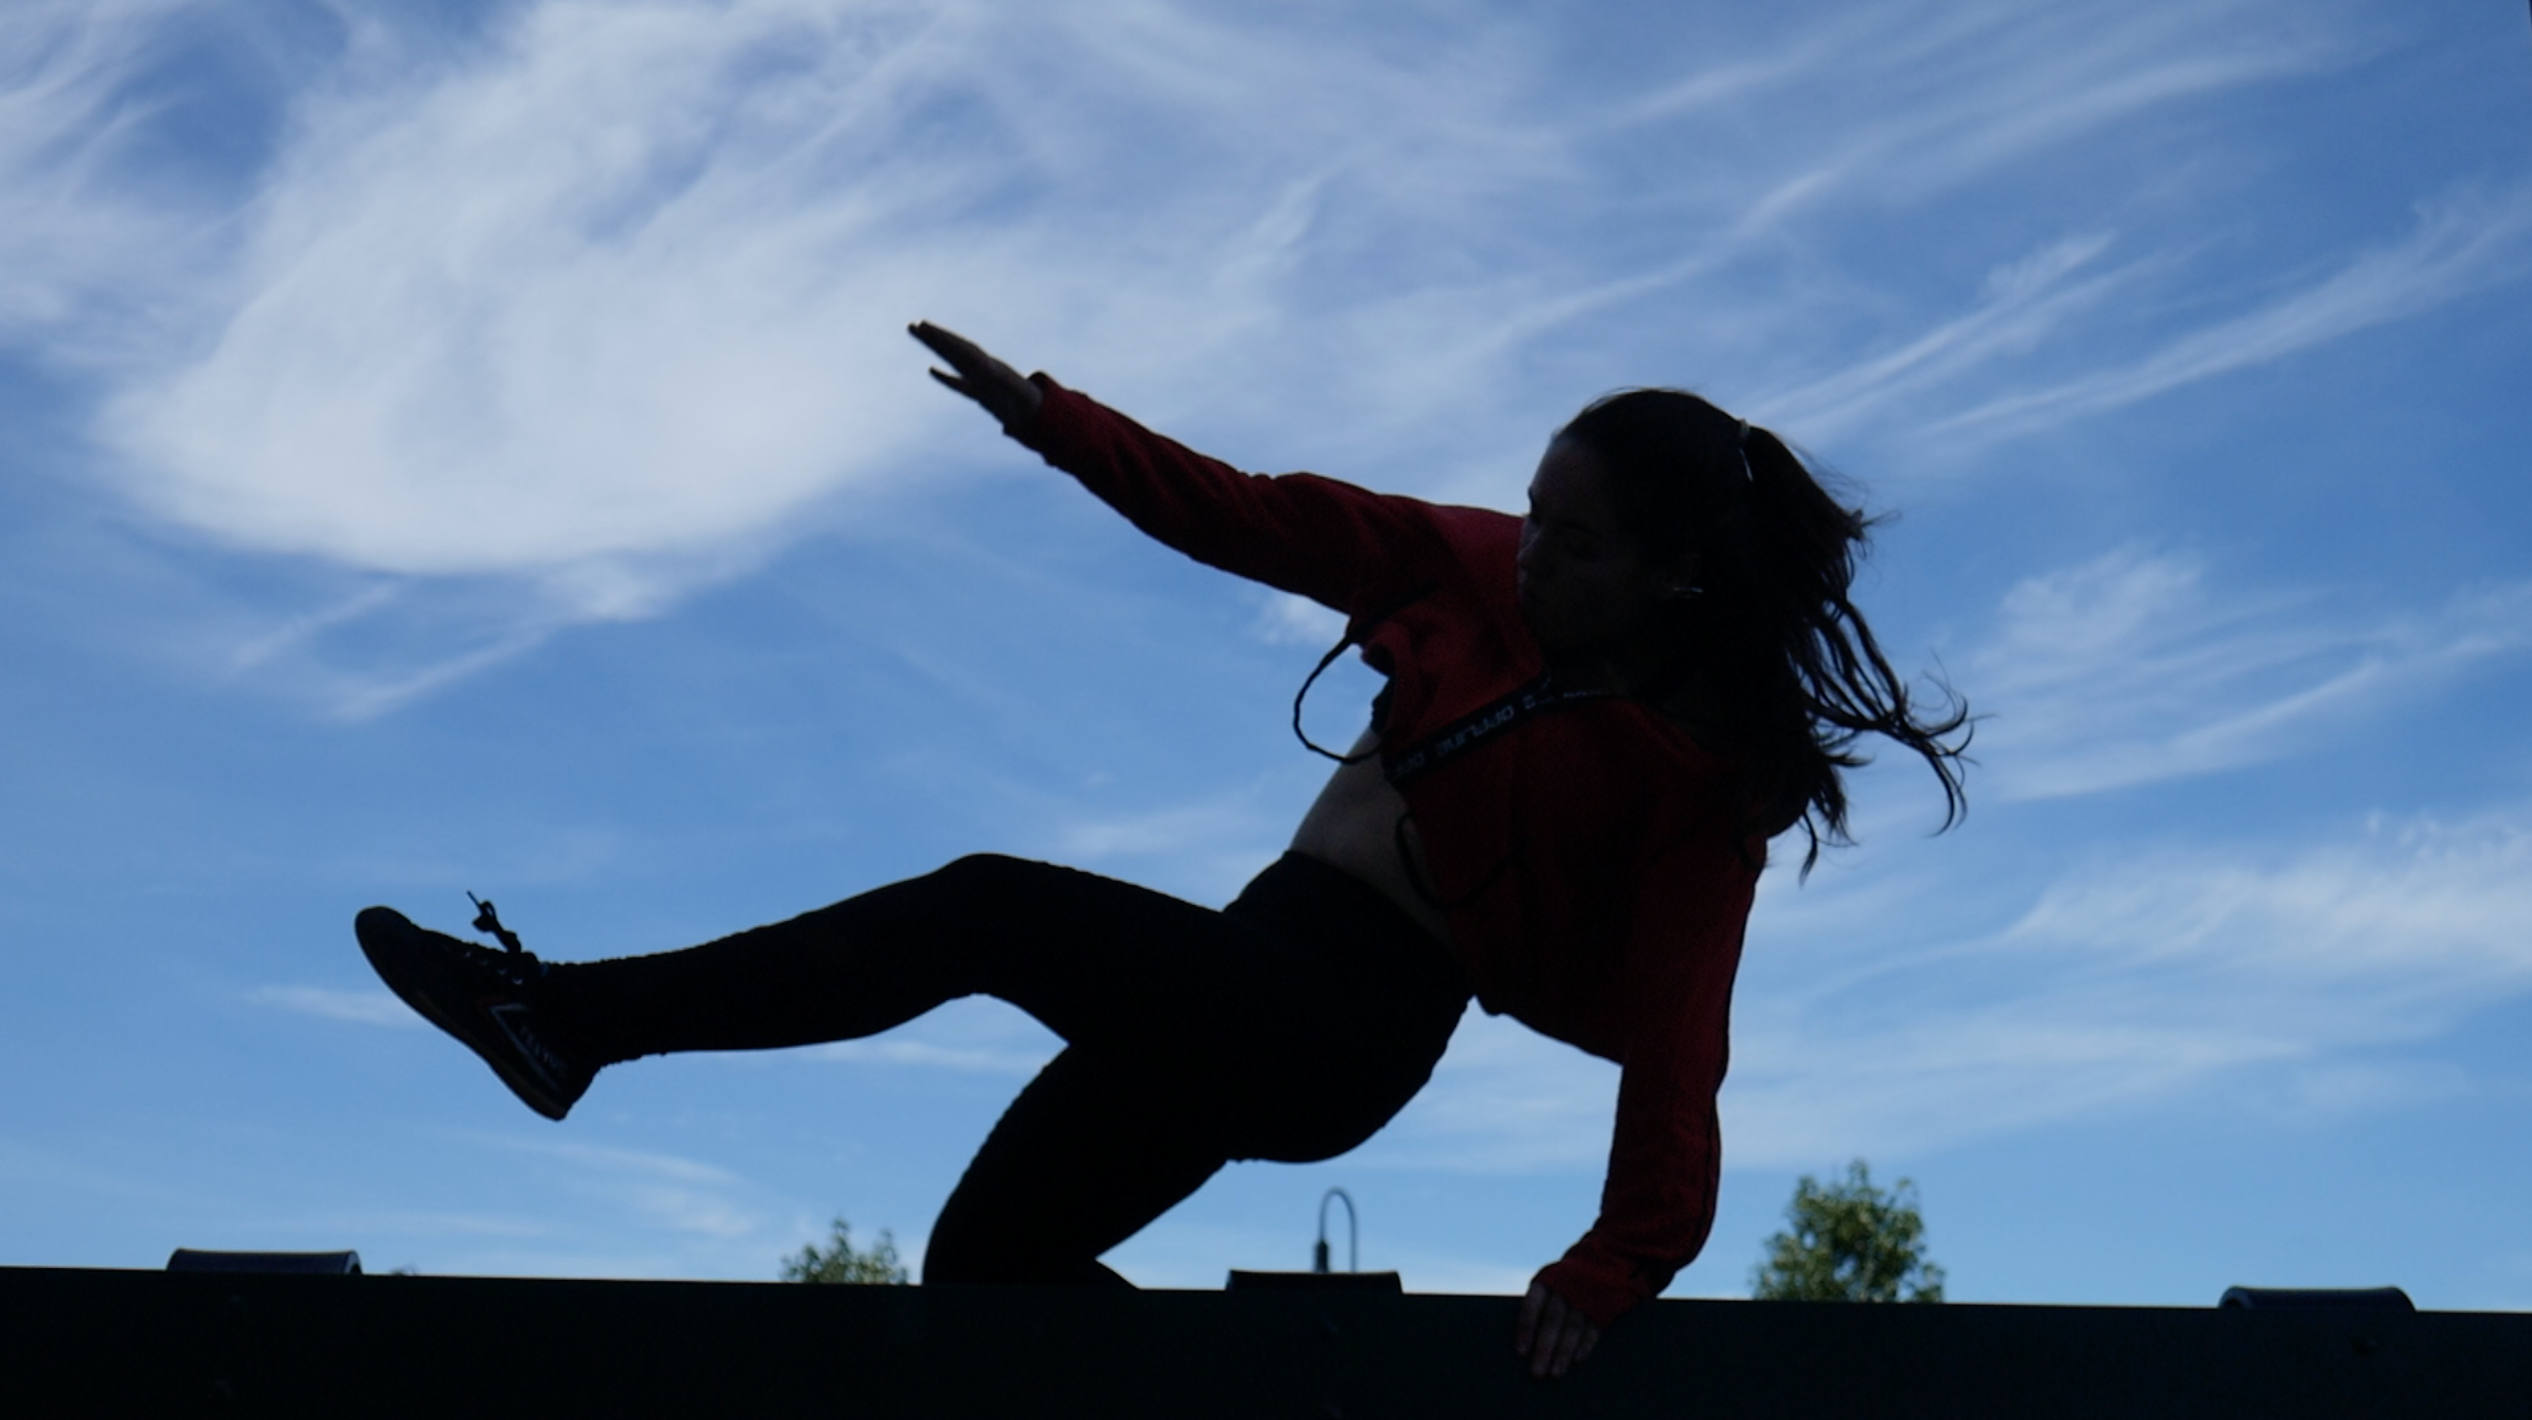 A woman does a speed vault, silhouetted against the sky